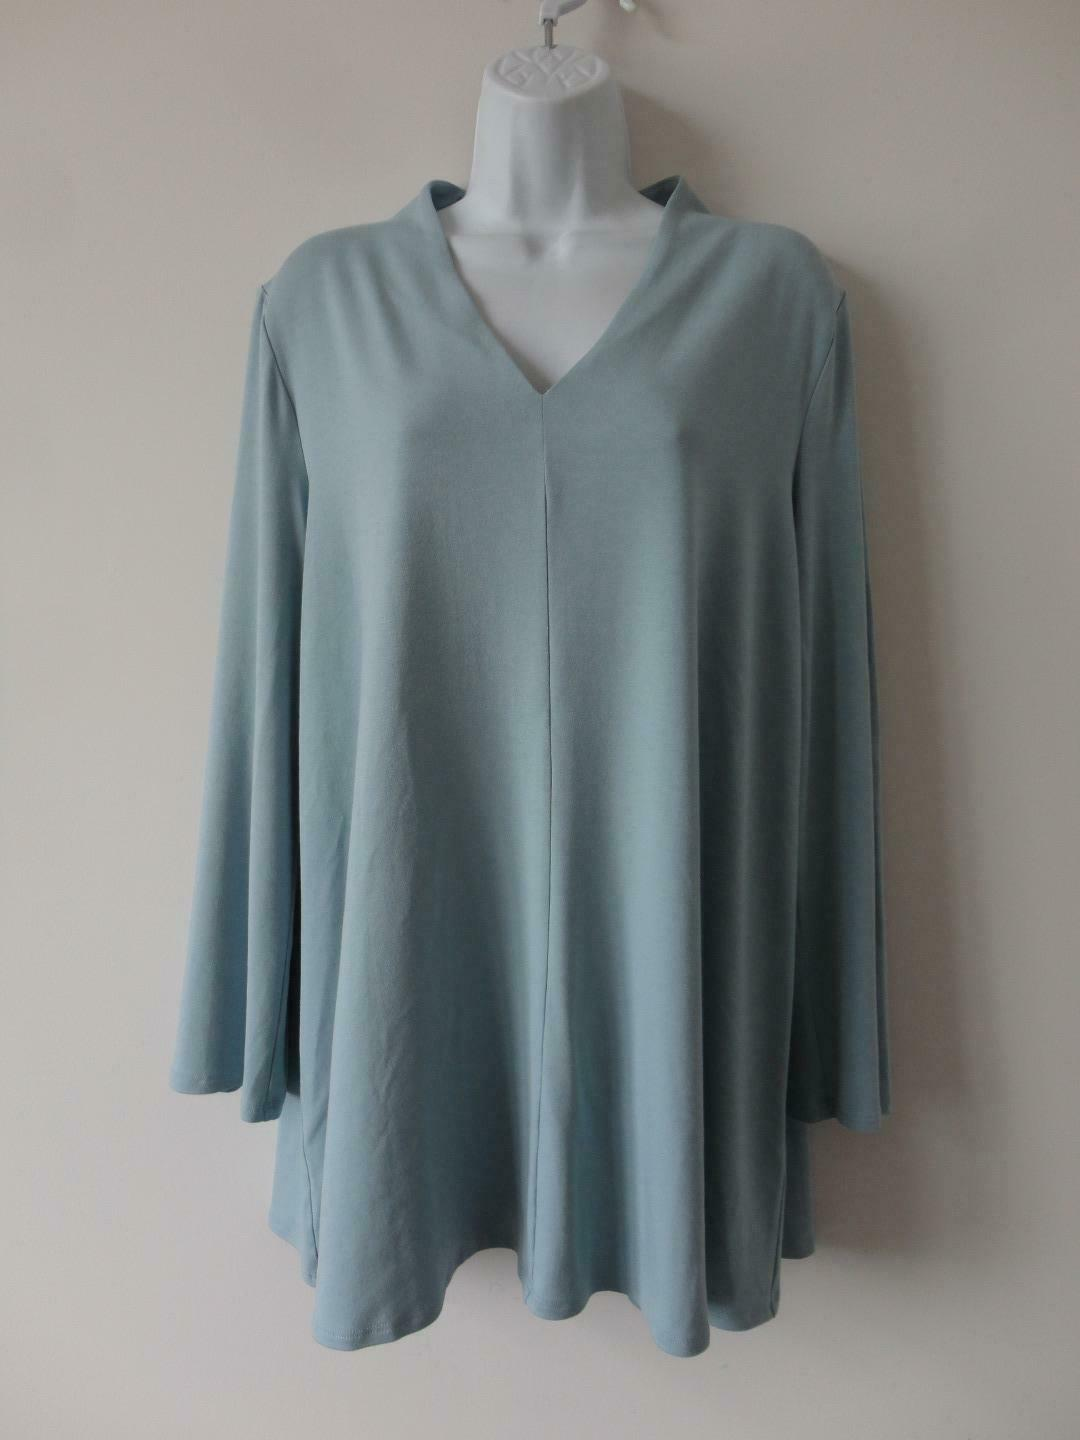 Primary image for NWT EILEEN FISHER Blue V Neck Viscose Jersey Long Sleeve Top Large